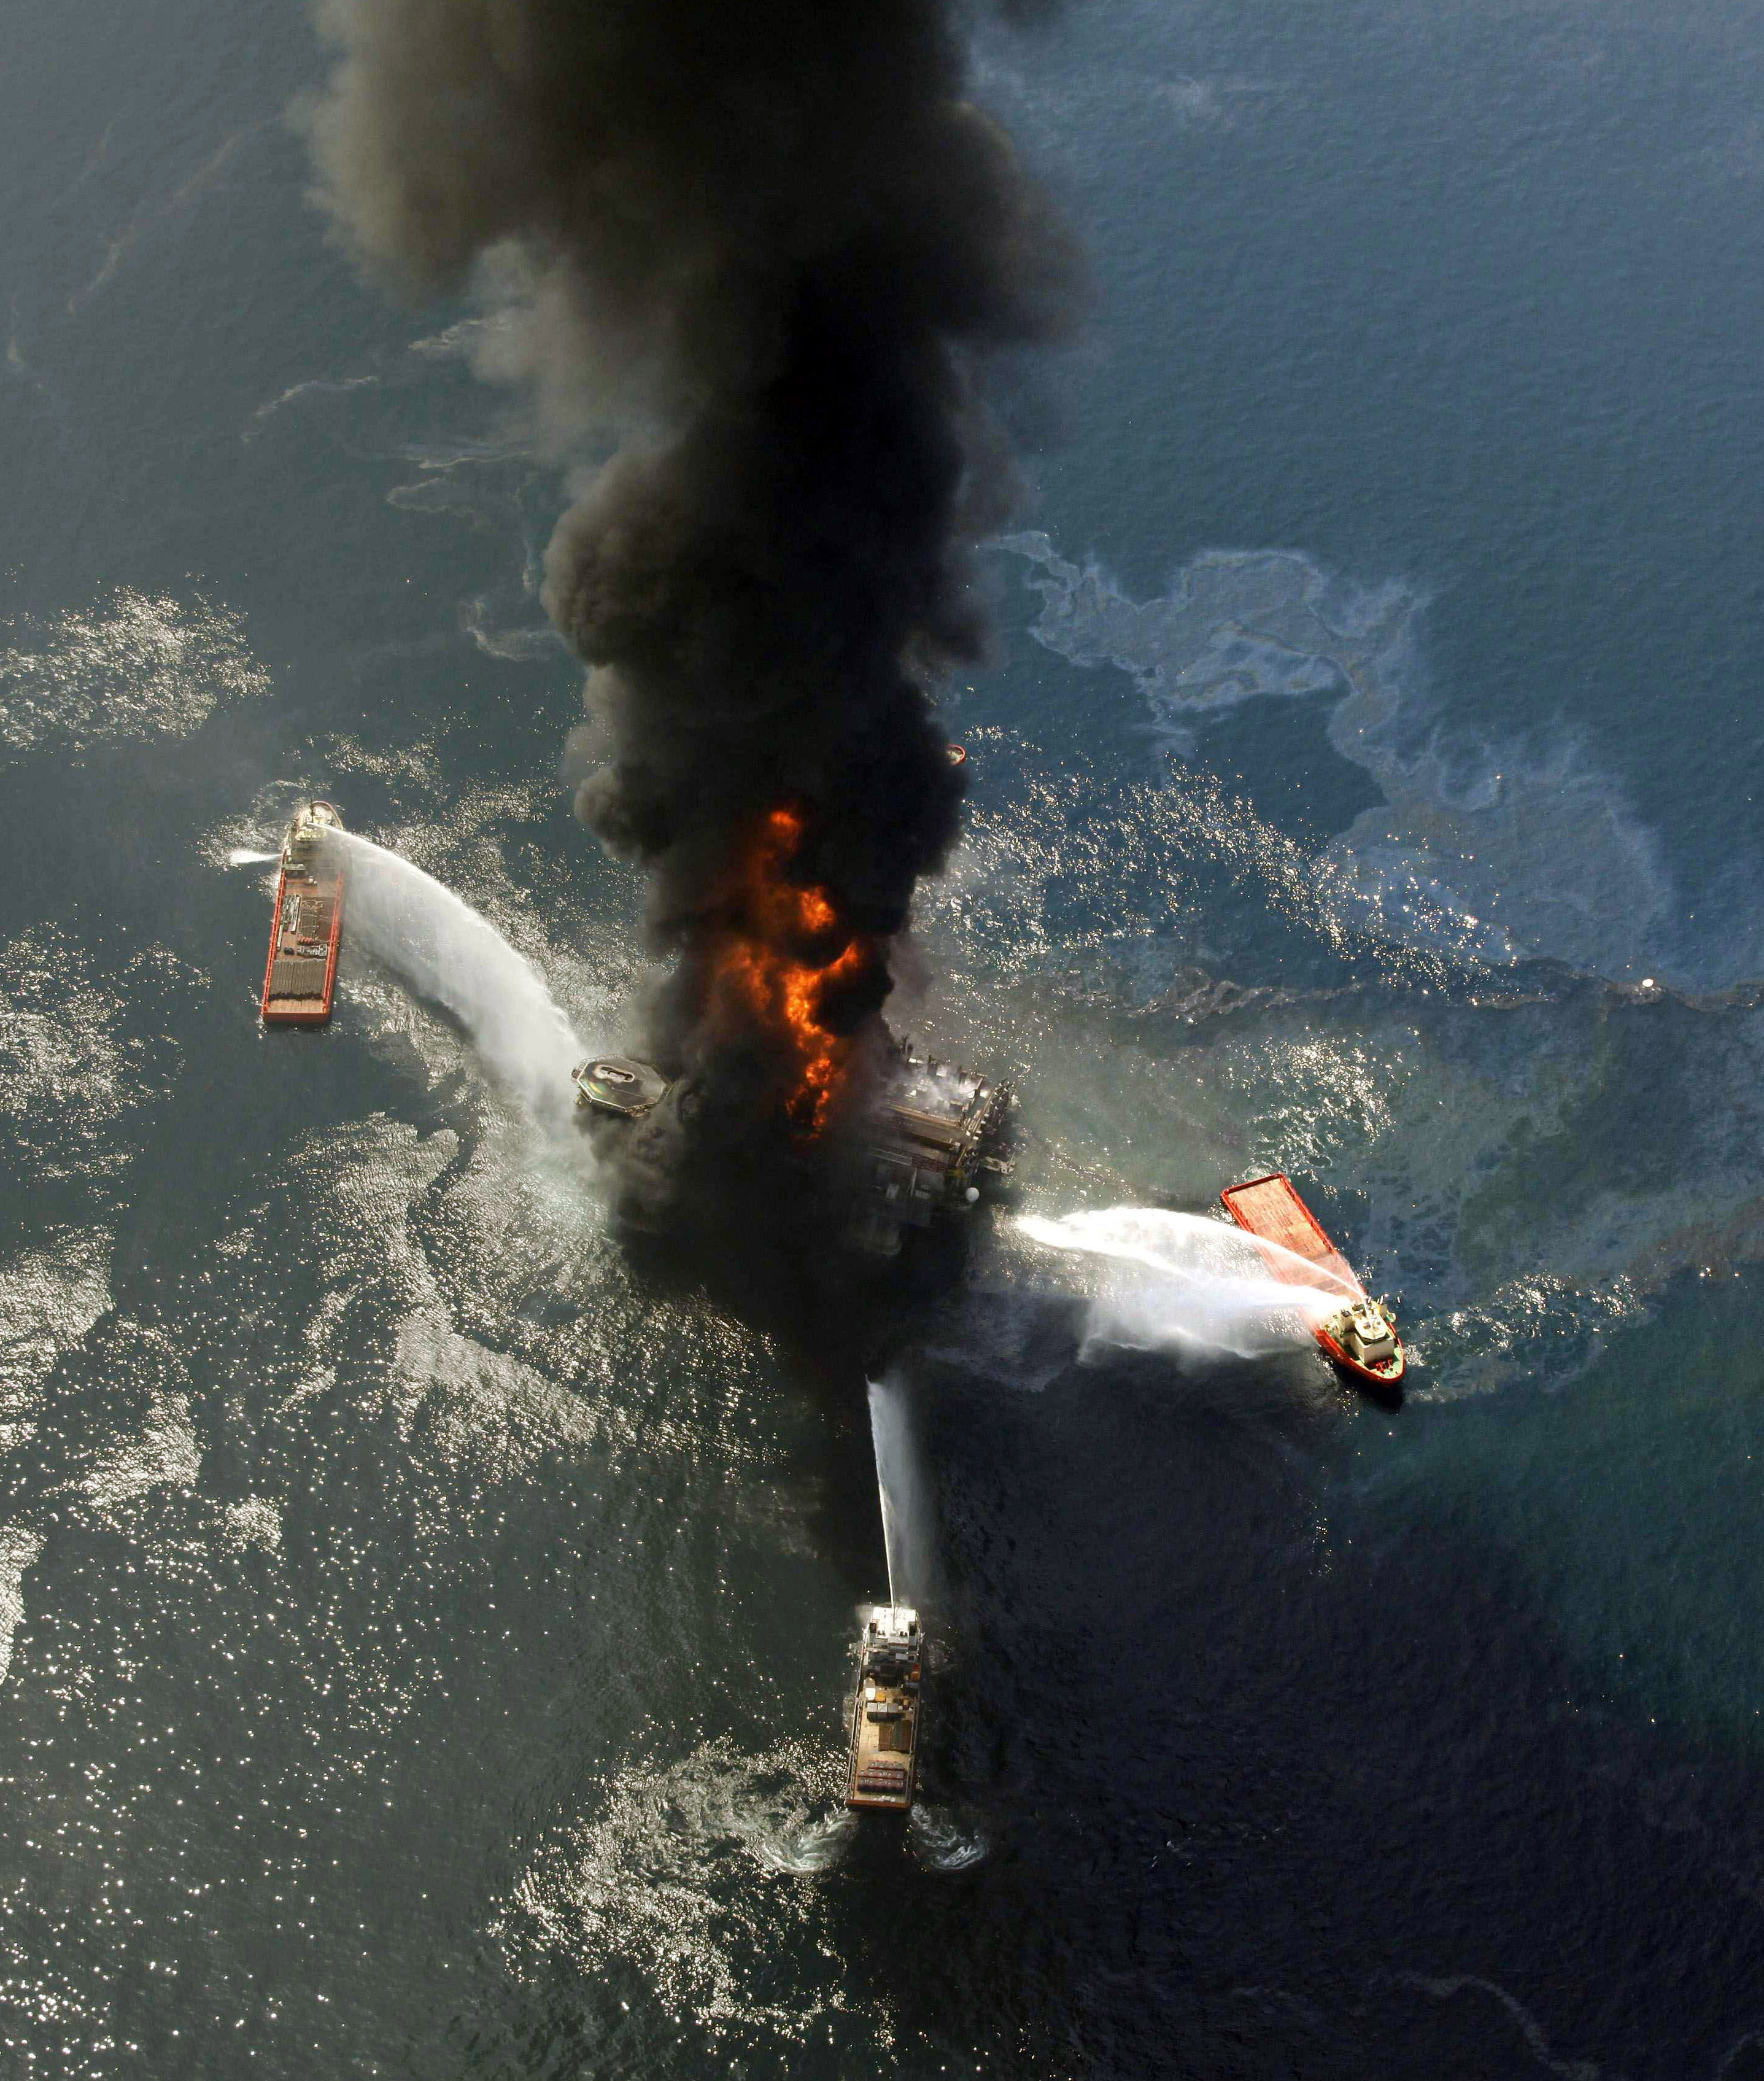 This April 21 file photo show the Deepwater Horizon oil rig burning after an explosion in the Gulf of Mexico, off the southeast tip of Louisiana.